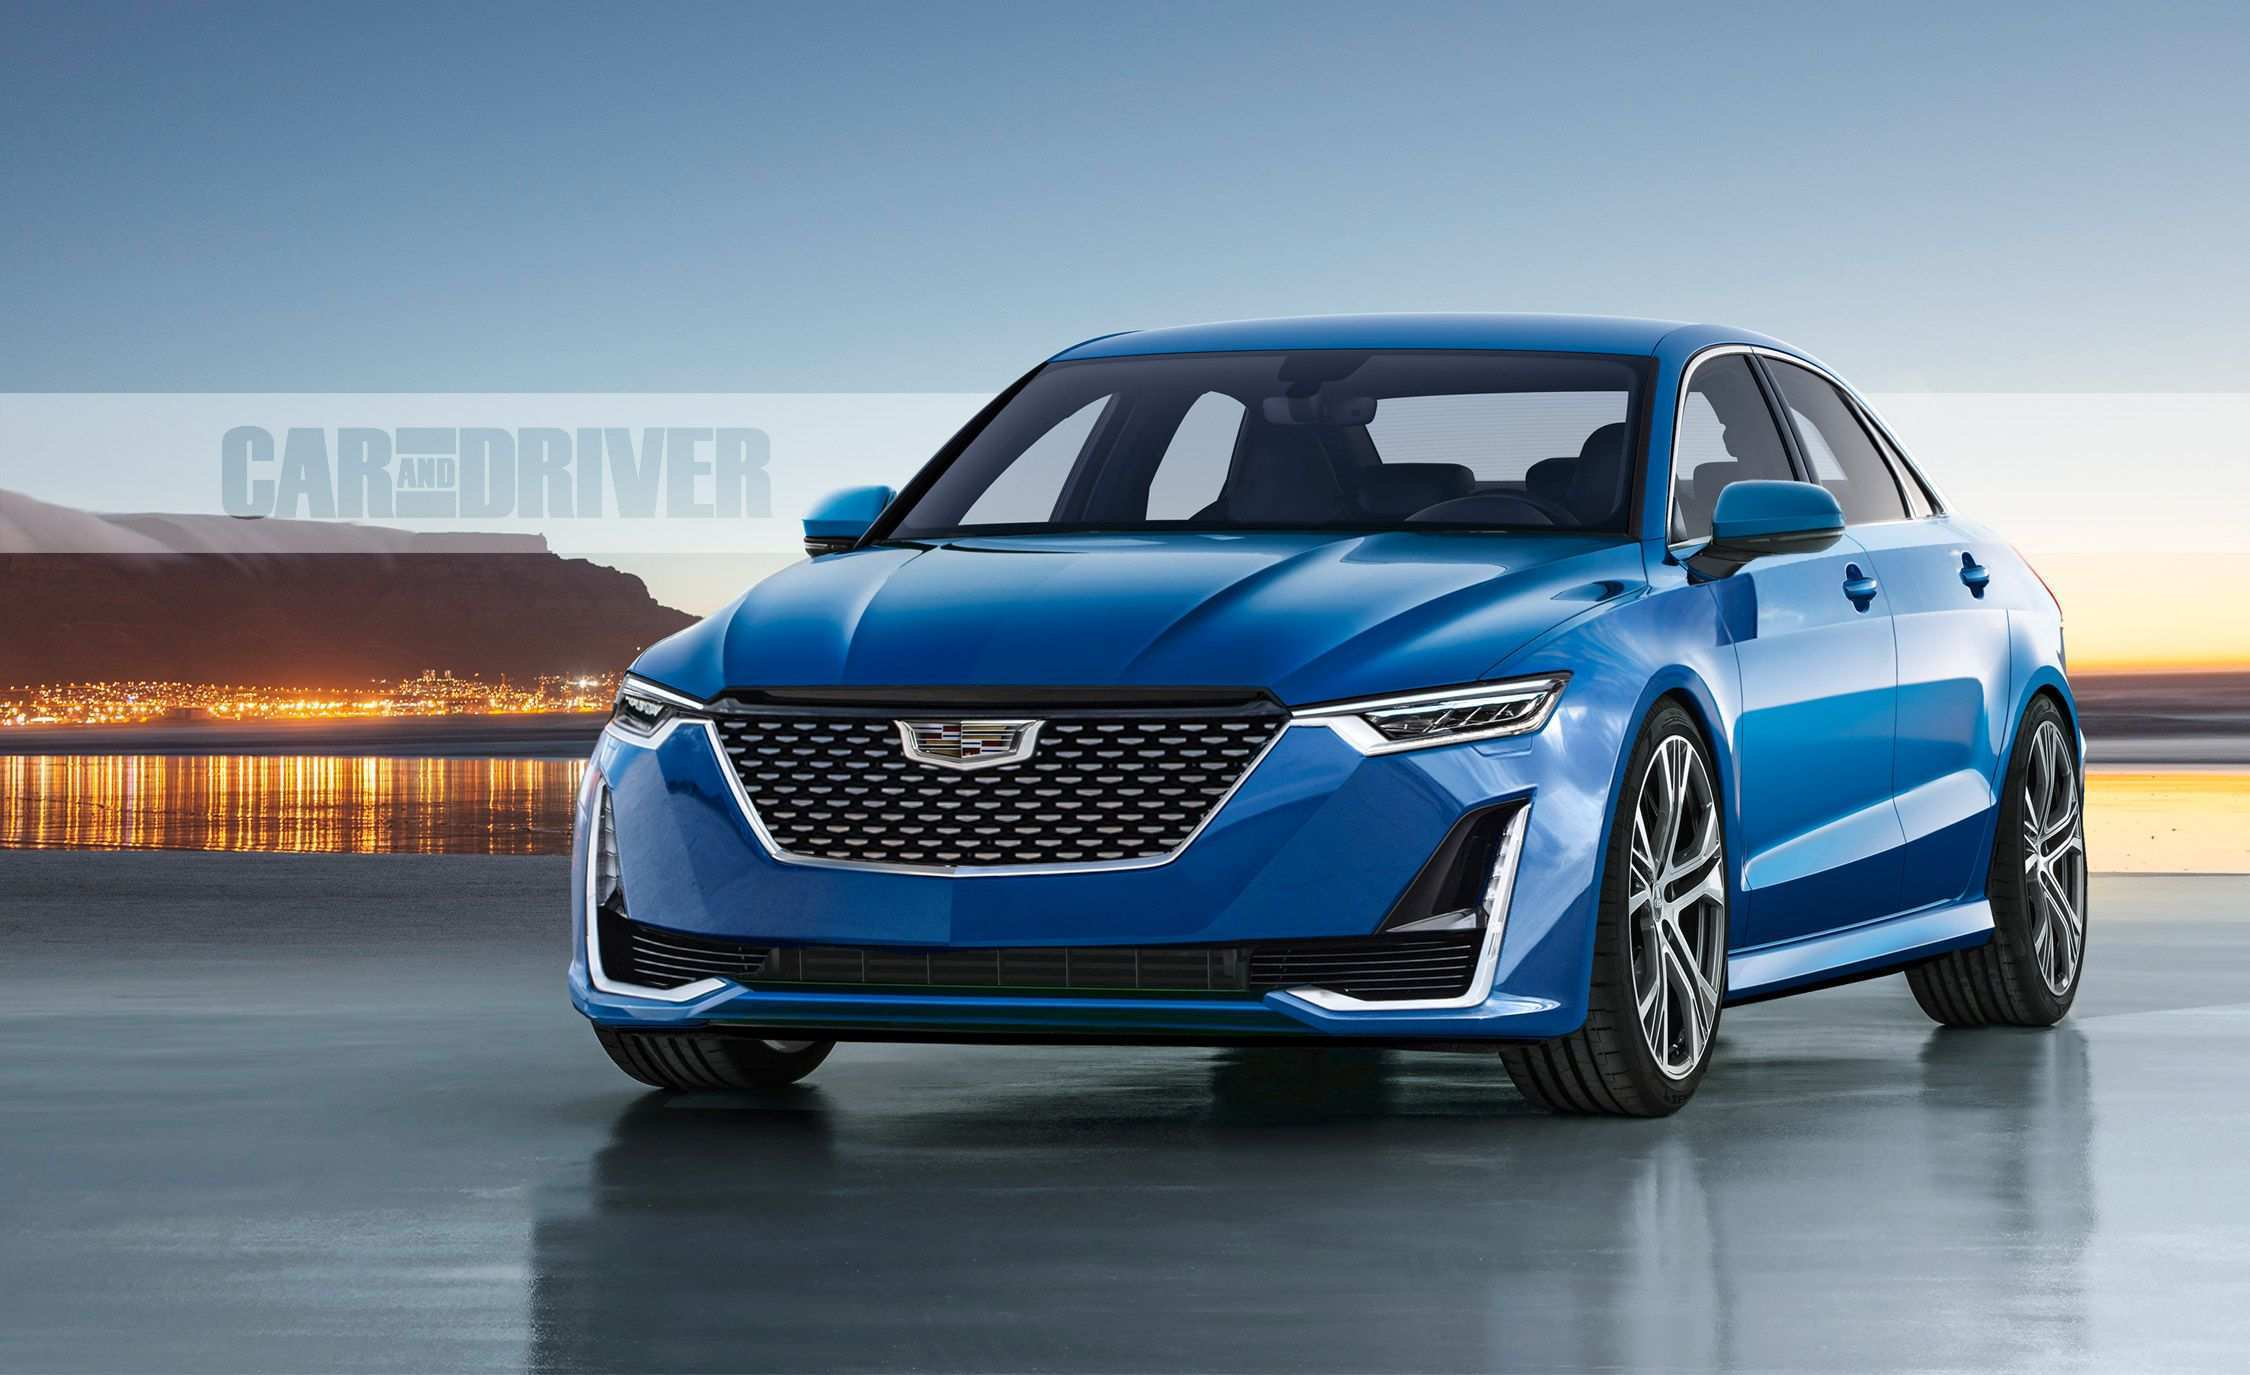 95 New 2019 Cadillac Ct4 Spesification with 2019 Cadillac Ct4